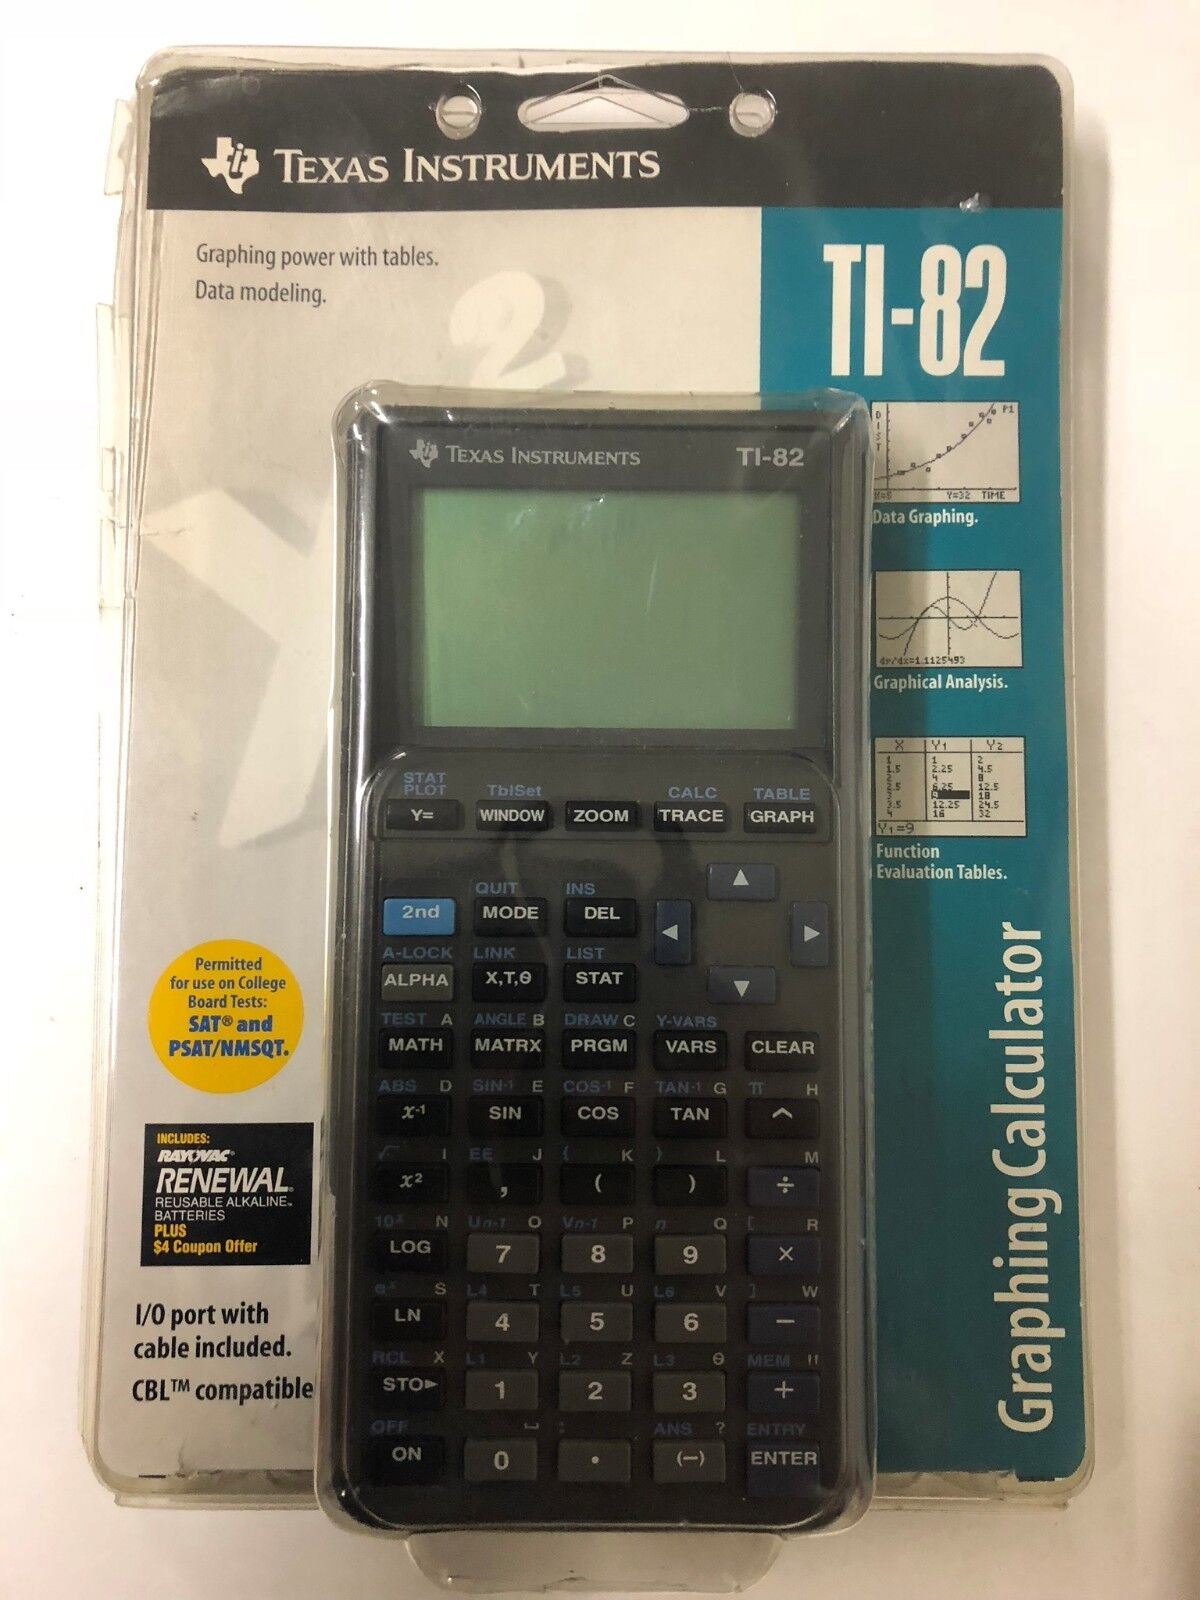 Texas Instruments TI-82 Gray Graphing Calculator I/O Port Cable & Manual